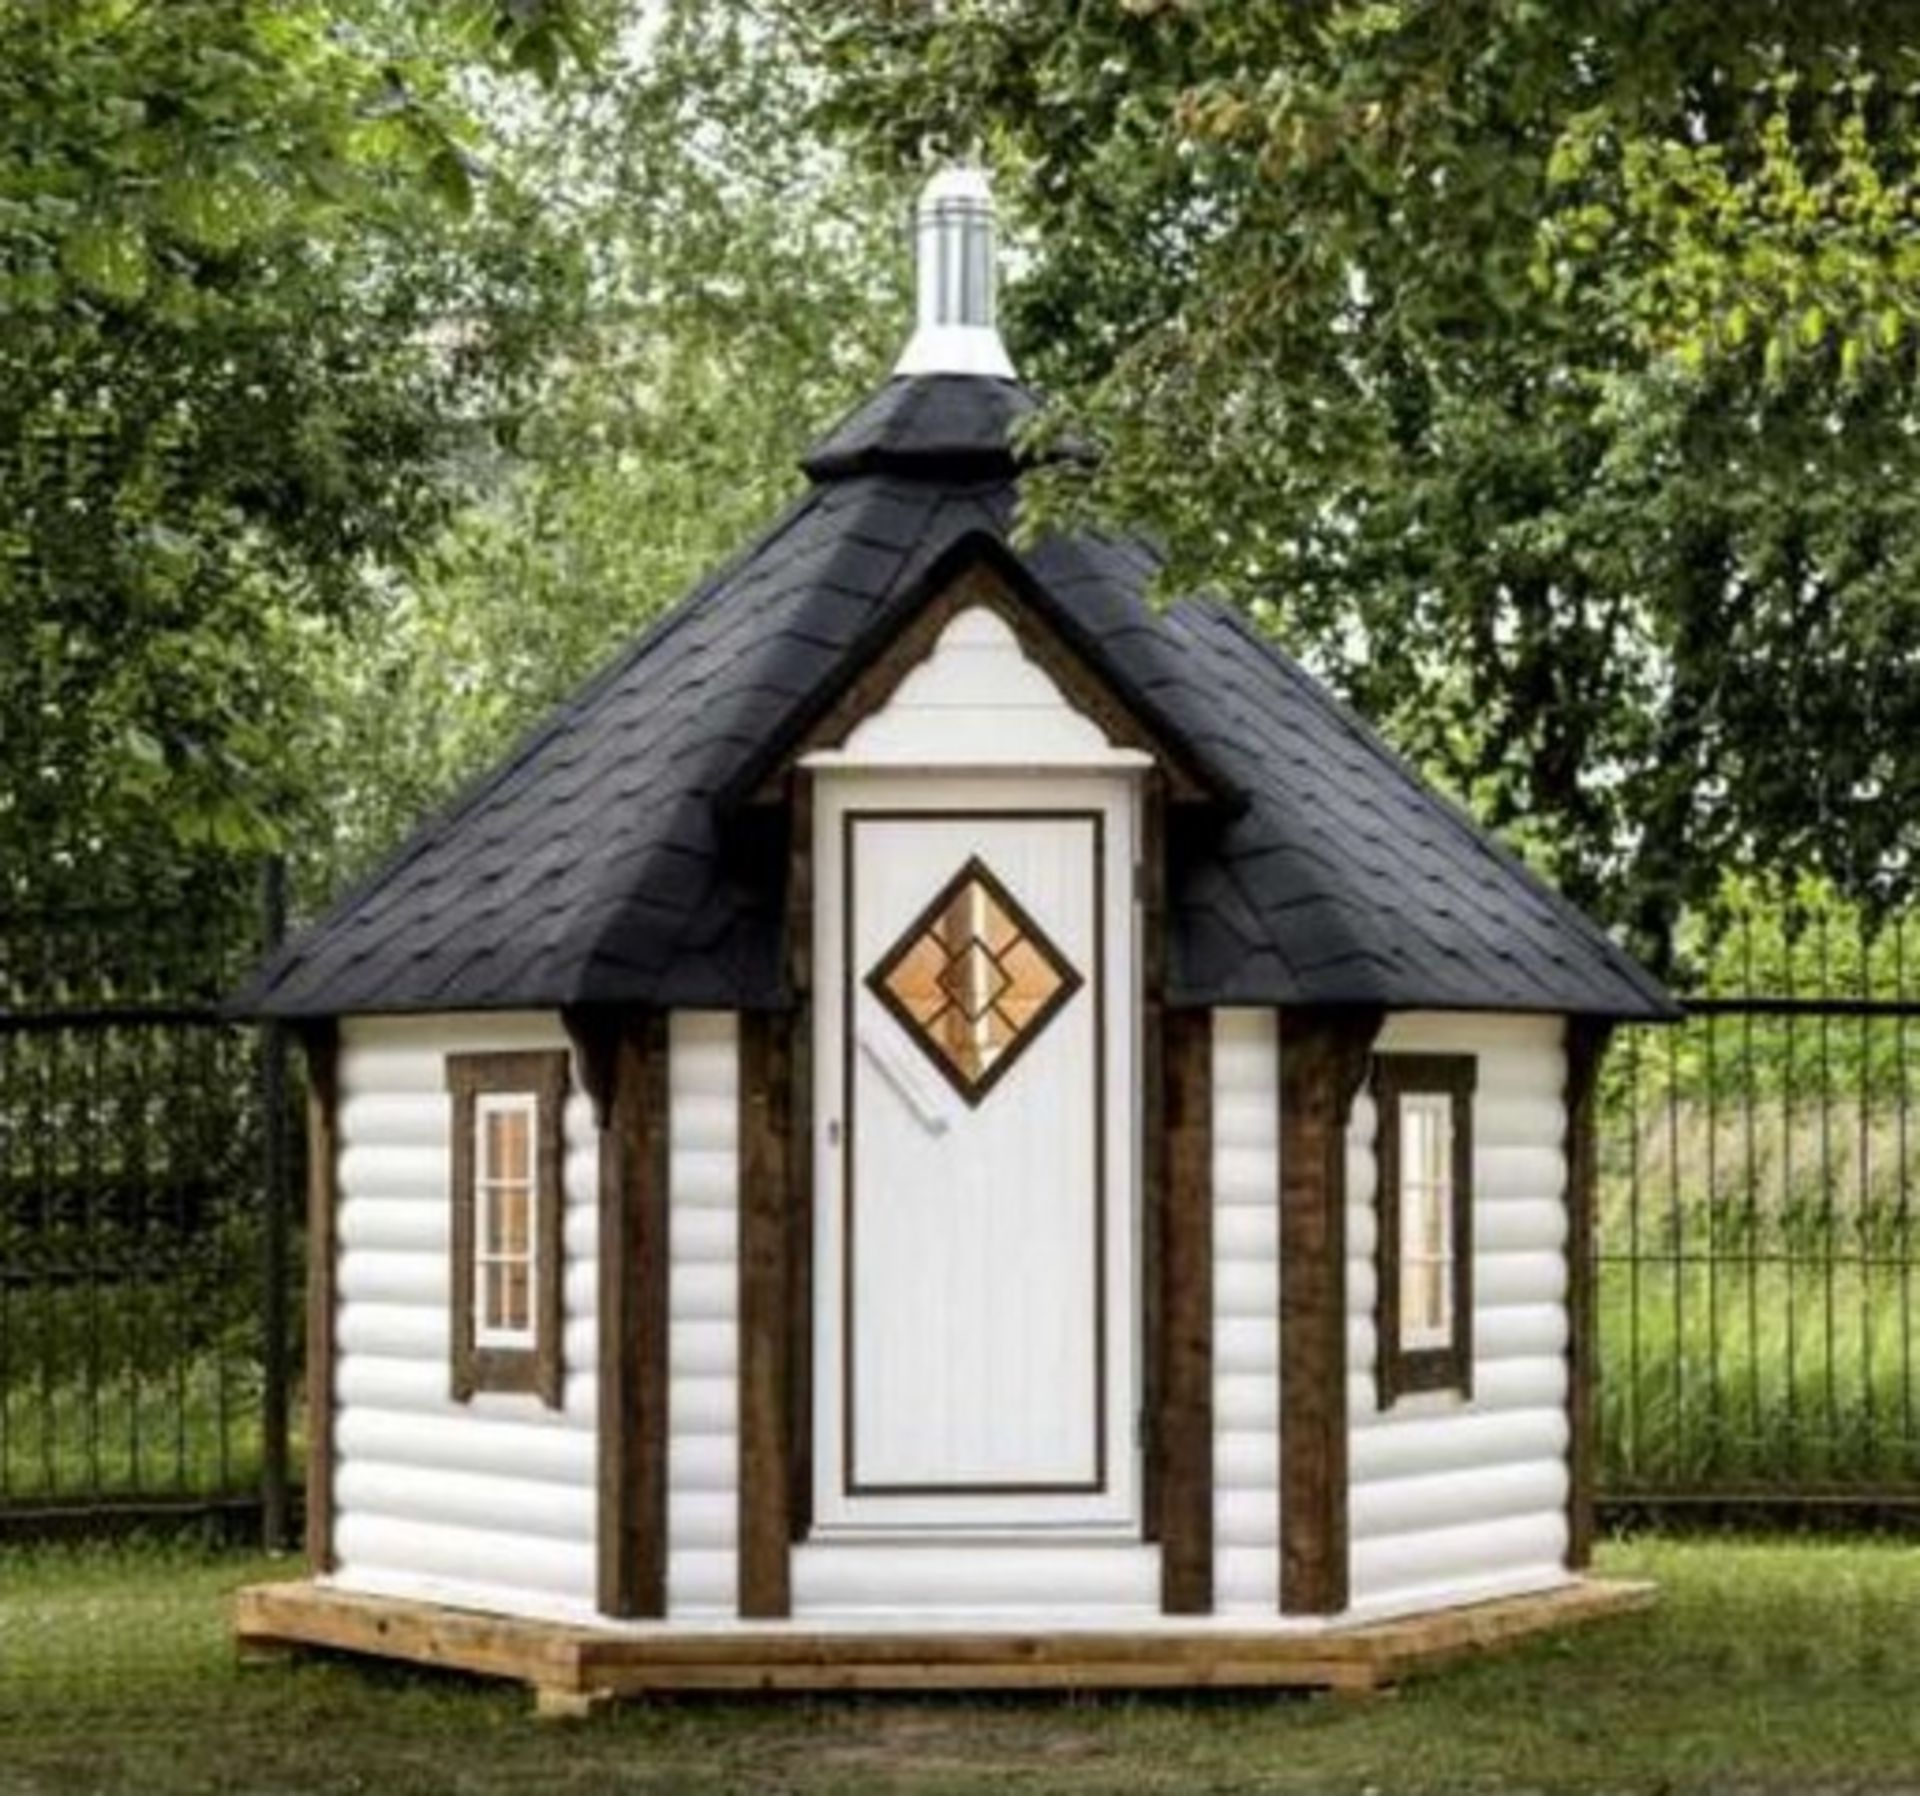 Lot 18033 - V Brand New 7m sq 6 Corner Spruce Sauna Cabin with 9KW Electric Heater - Pallet Dimesions 3 x 1.2